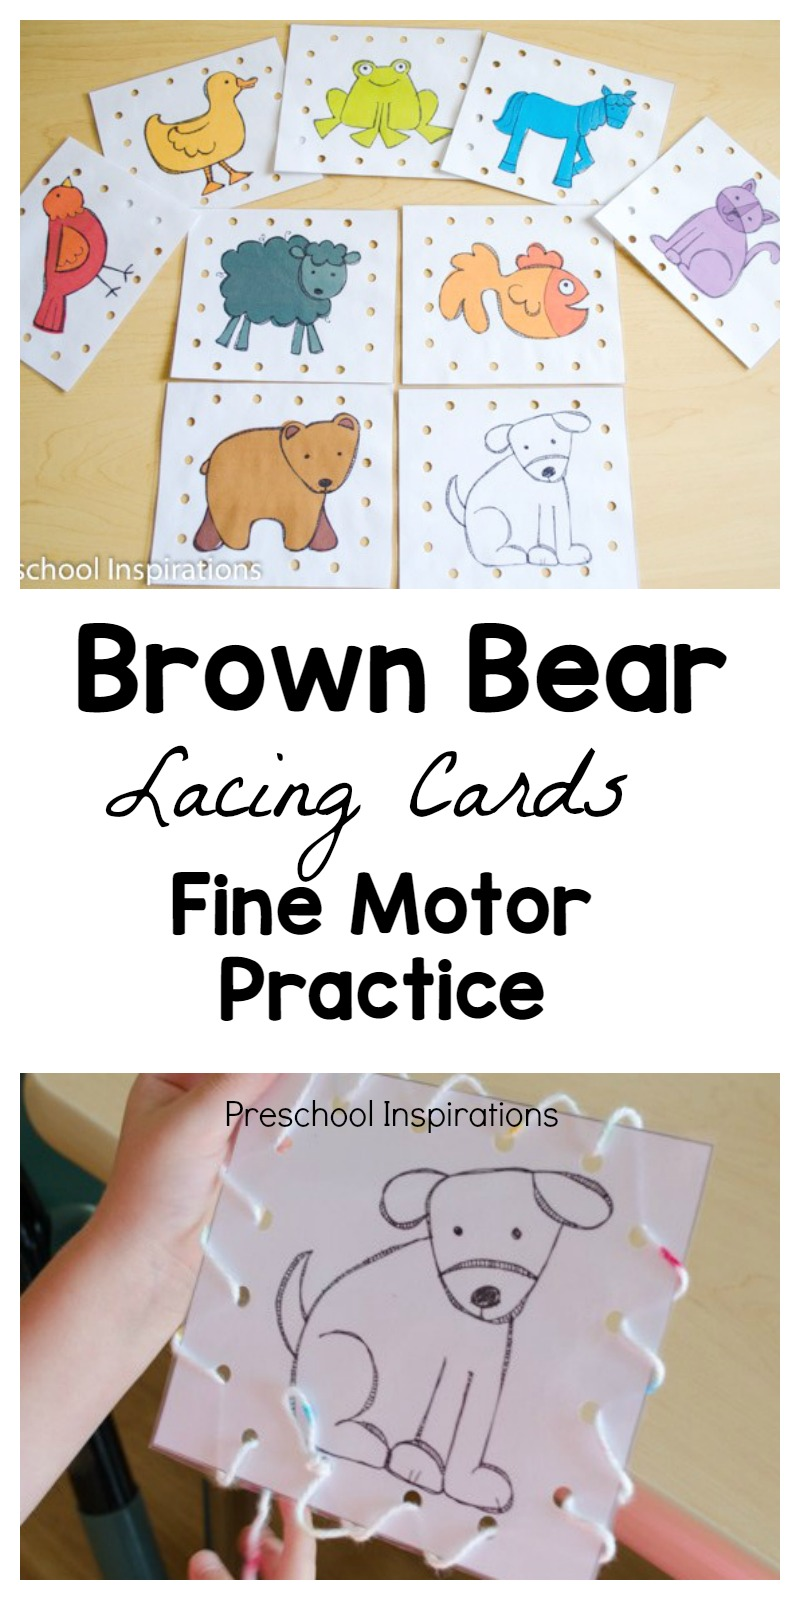 Practice important fine motor skills with these Brown Bear lacing cards.